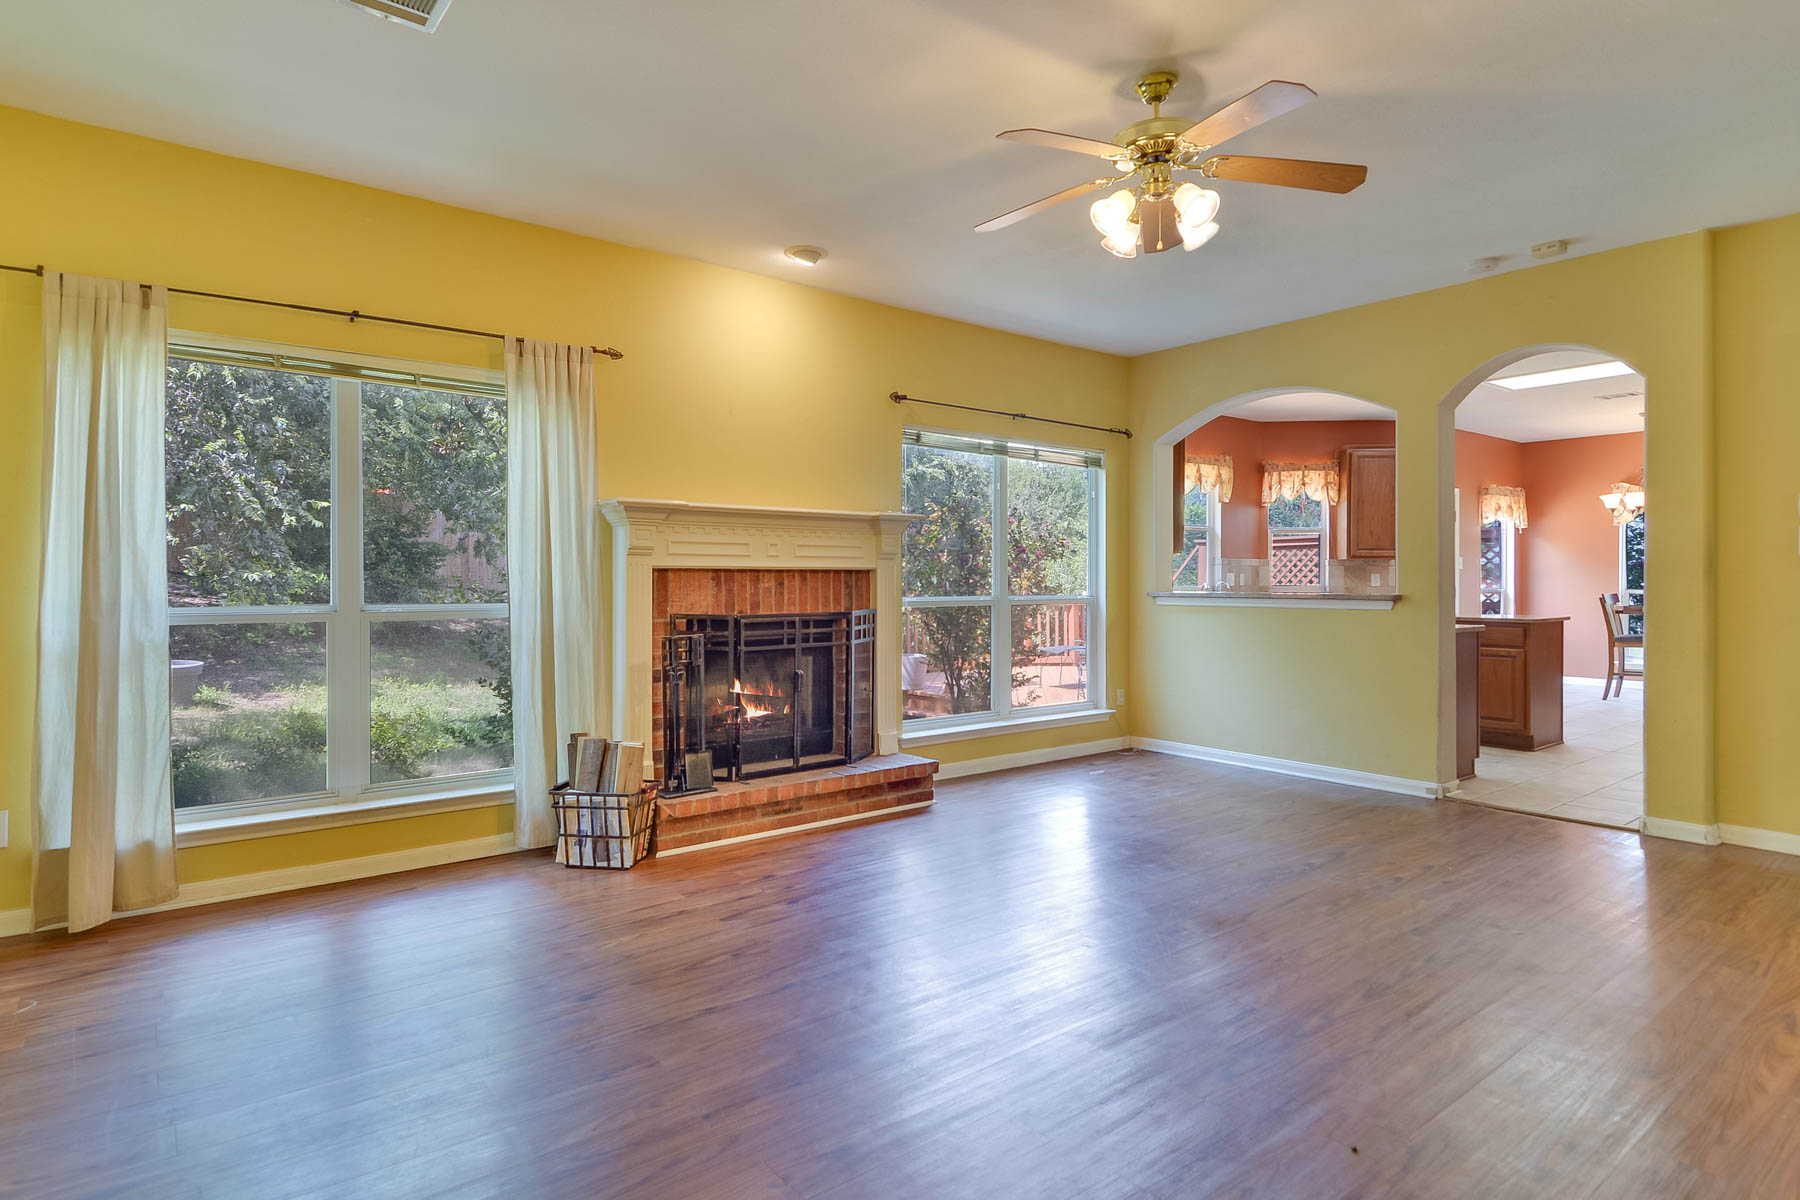 Additional photo for property listing at Warm and Inviting Home in Santa Fe Trail 1702 Santa Fe Trl San Antonio, Texas 78232 United States